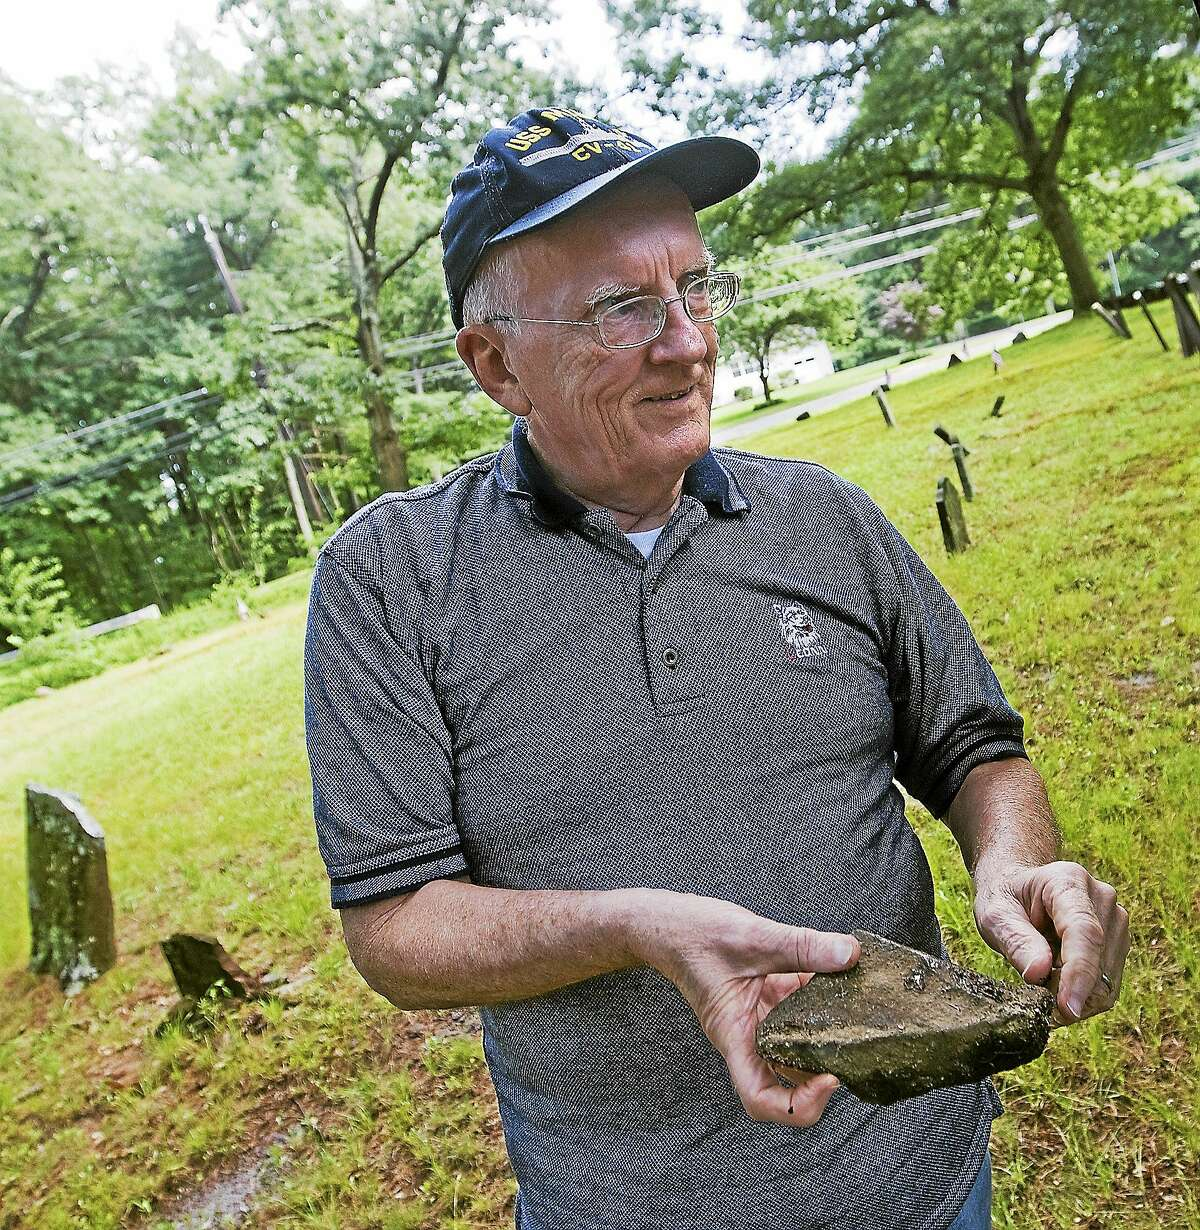 In this July 9, 2013 photo, Ray Thomas, co-founder of the Southington Genealogy Society, holds a stone from a broken memorial at Merriman Burying Ground in Plantsville, Conn.